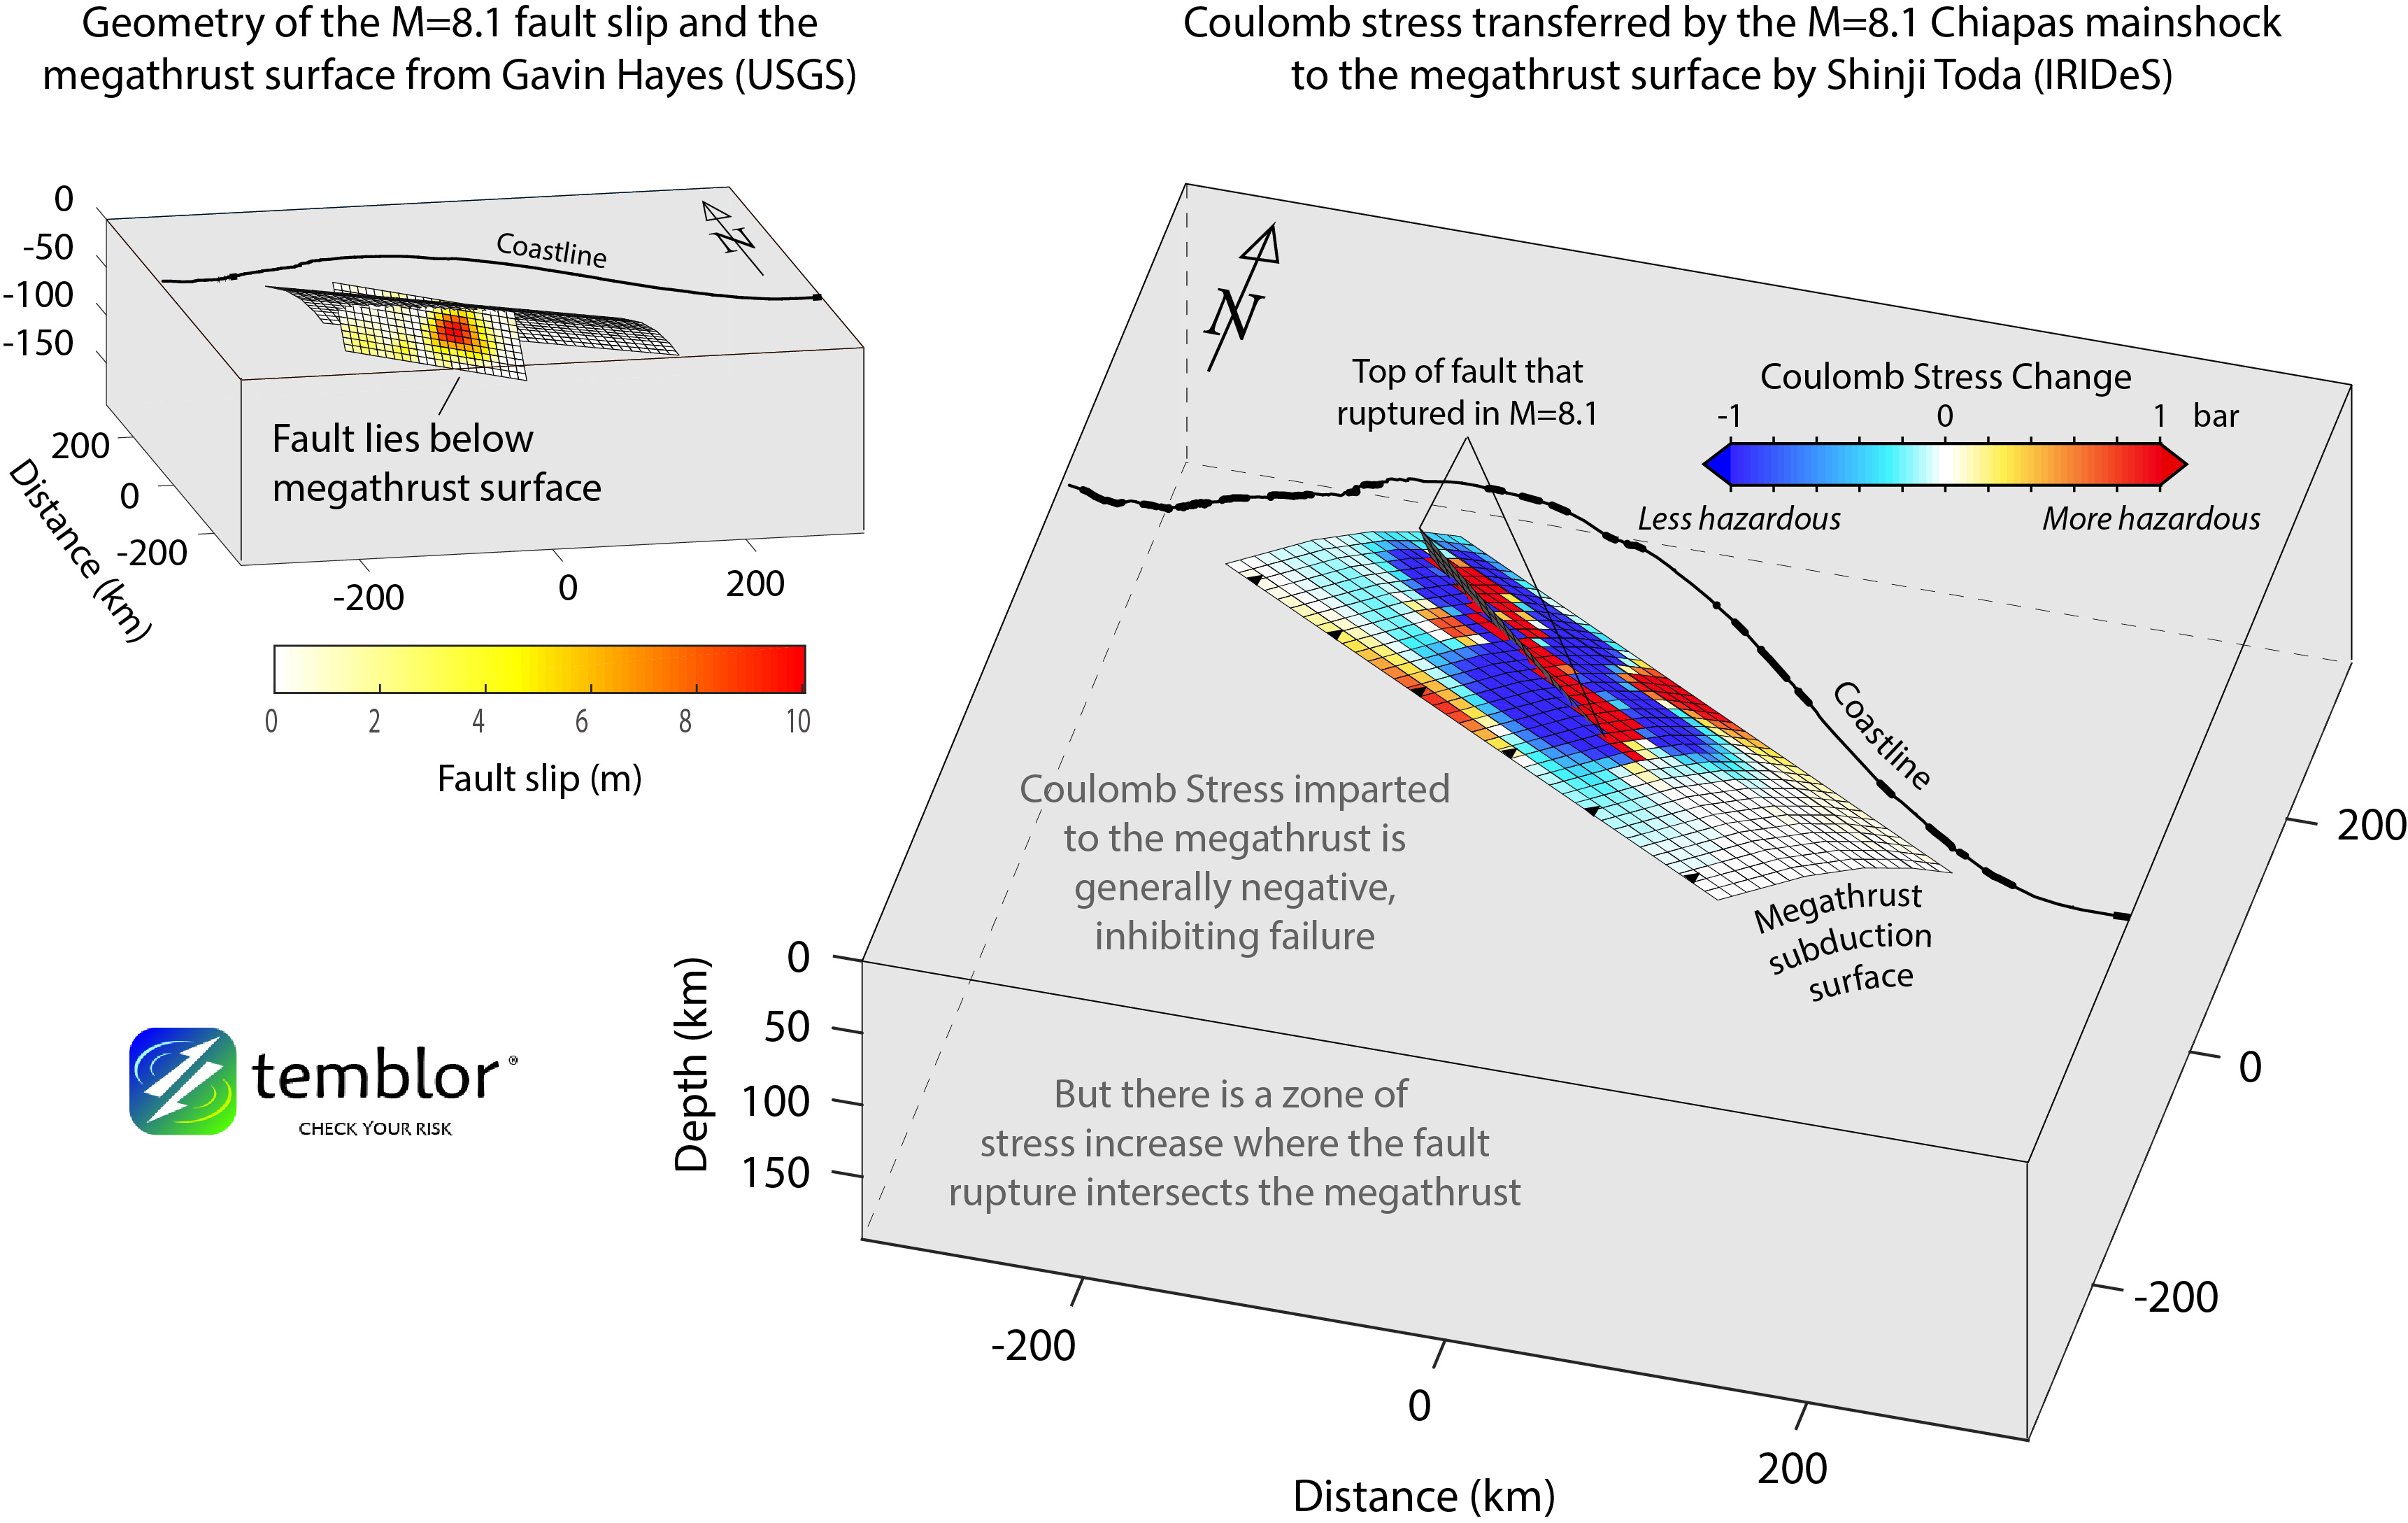 These two figures reveal both where slip occurred in the 7 Sept. M=8.1 Chiapas earthquake, and how stress was transferred. The model on the right illustrates how the majority of slip was confined to a small area, despite the fact that total slip extended over a distance of 200 km. The figure on the right shows which parts of the megathrust surface became more hazardous (more likely to rupture), and which became less hazardous). (Figures by Shinji Toda, IRIDeS)